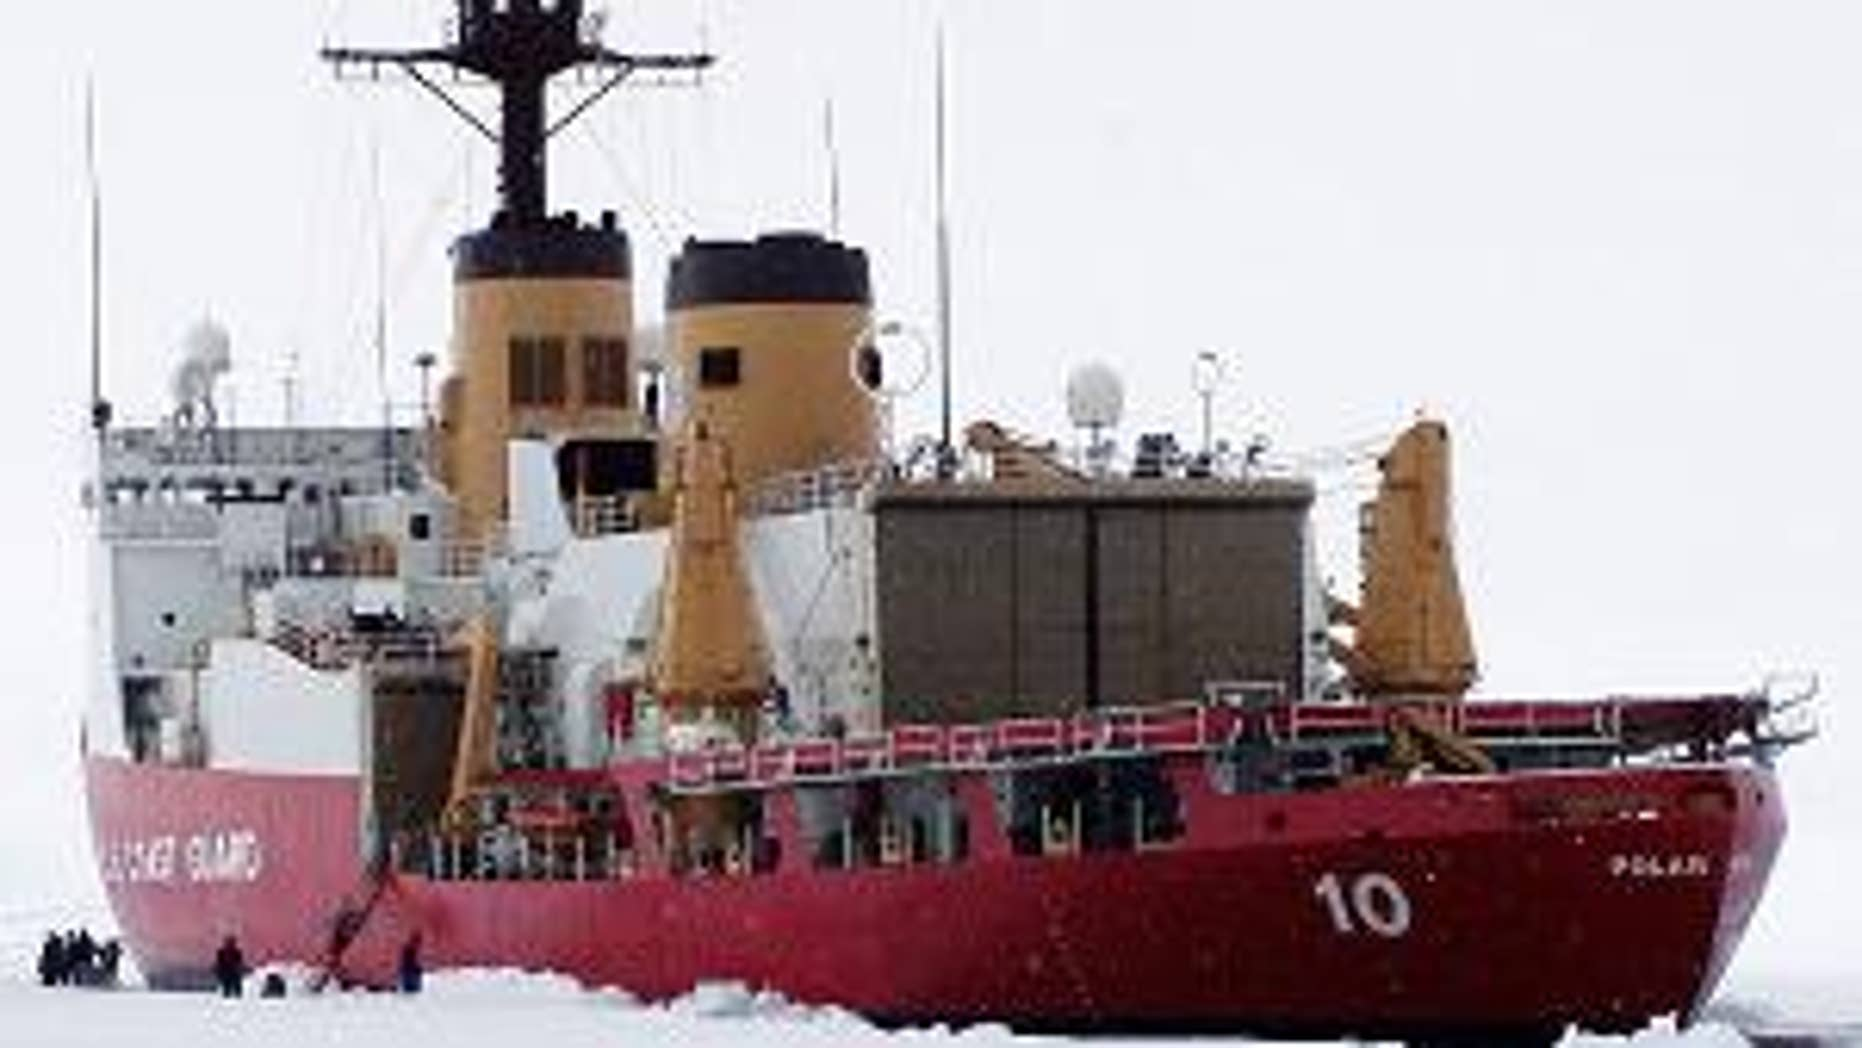 The U.S. Coast Guard ice breaker Polar Star is headed to Antarctica, where a fishing boat with 27 aboard is trapped in ice nine feet thick. (AP)